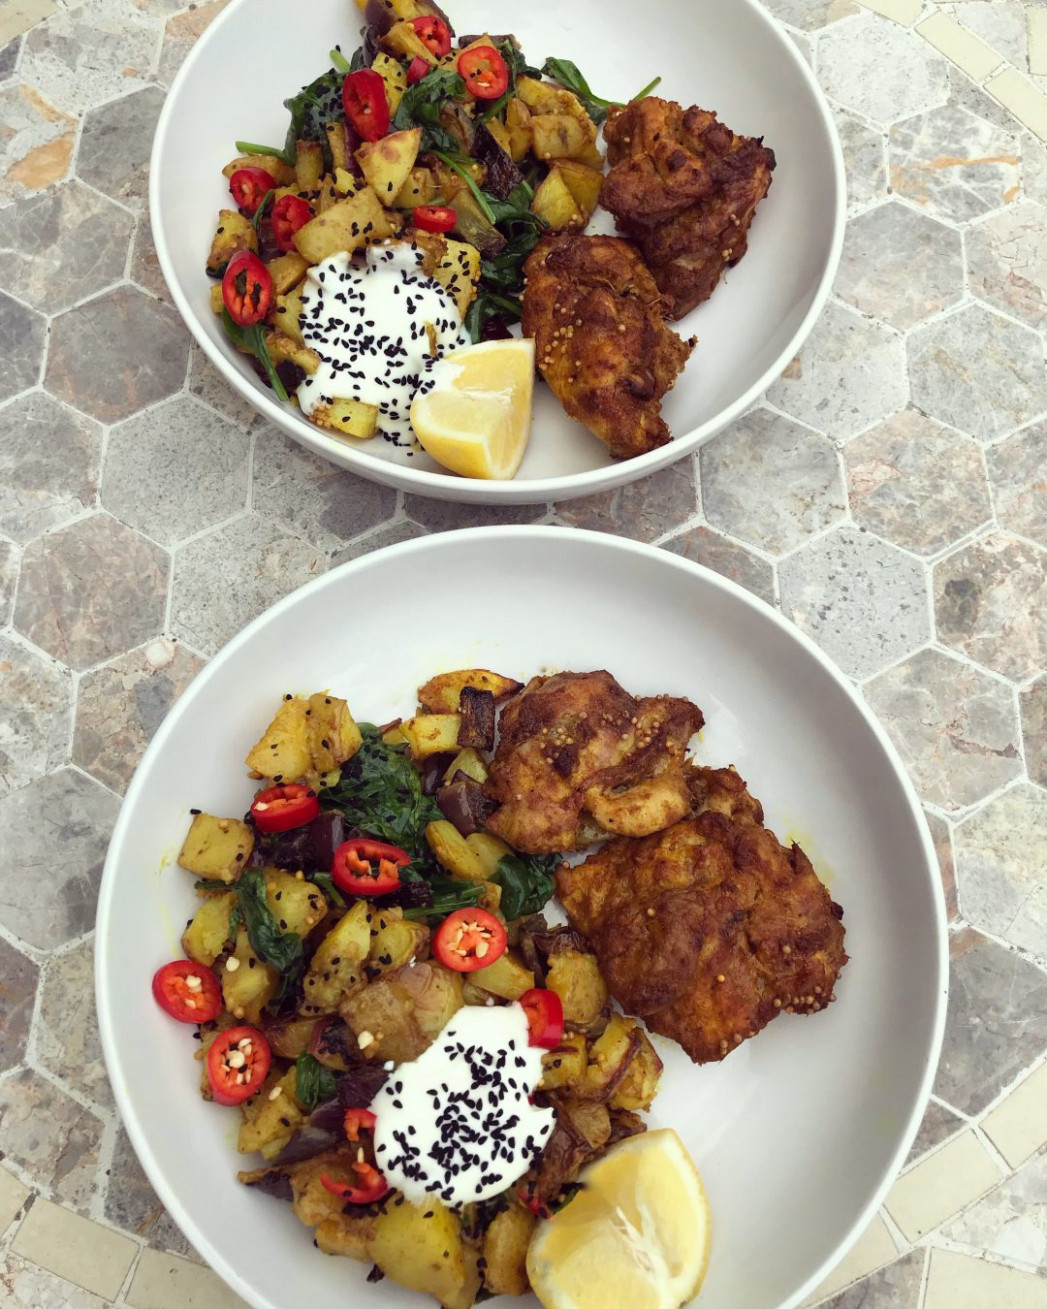 Gluten And Dairy Free Meals With Gousto - Gousto Recipes Chicken